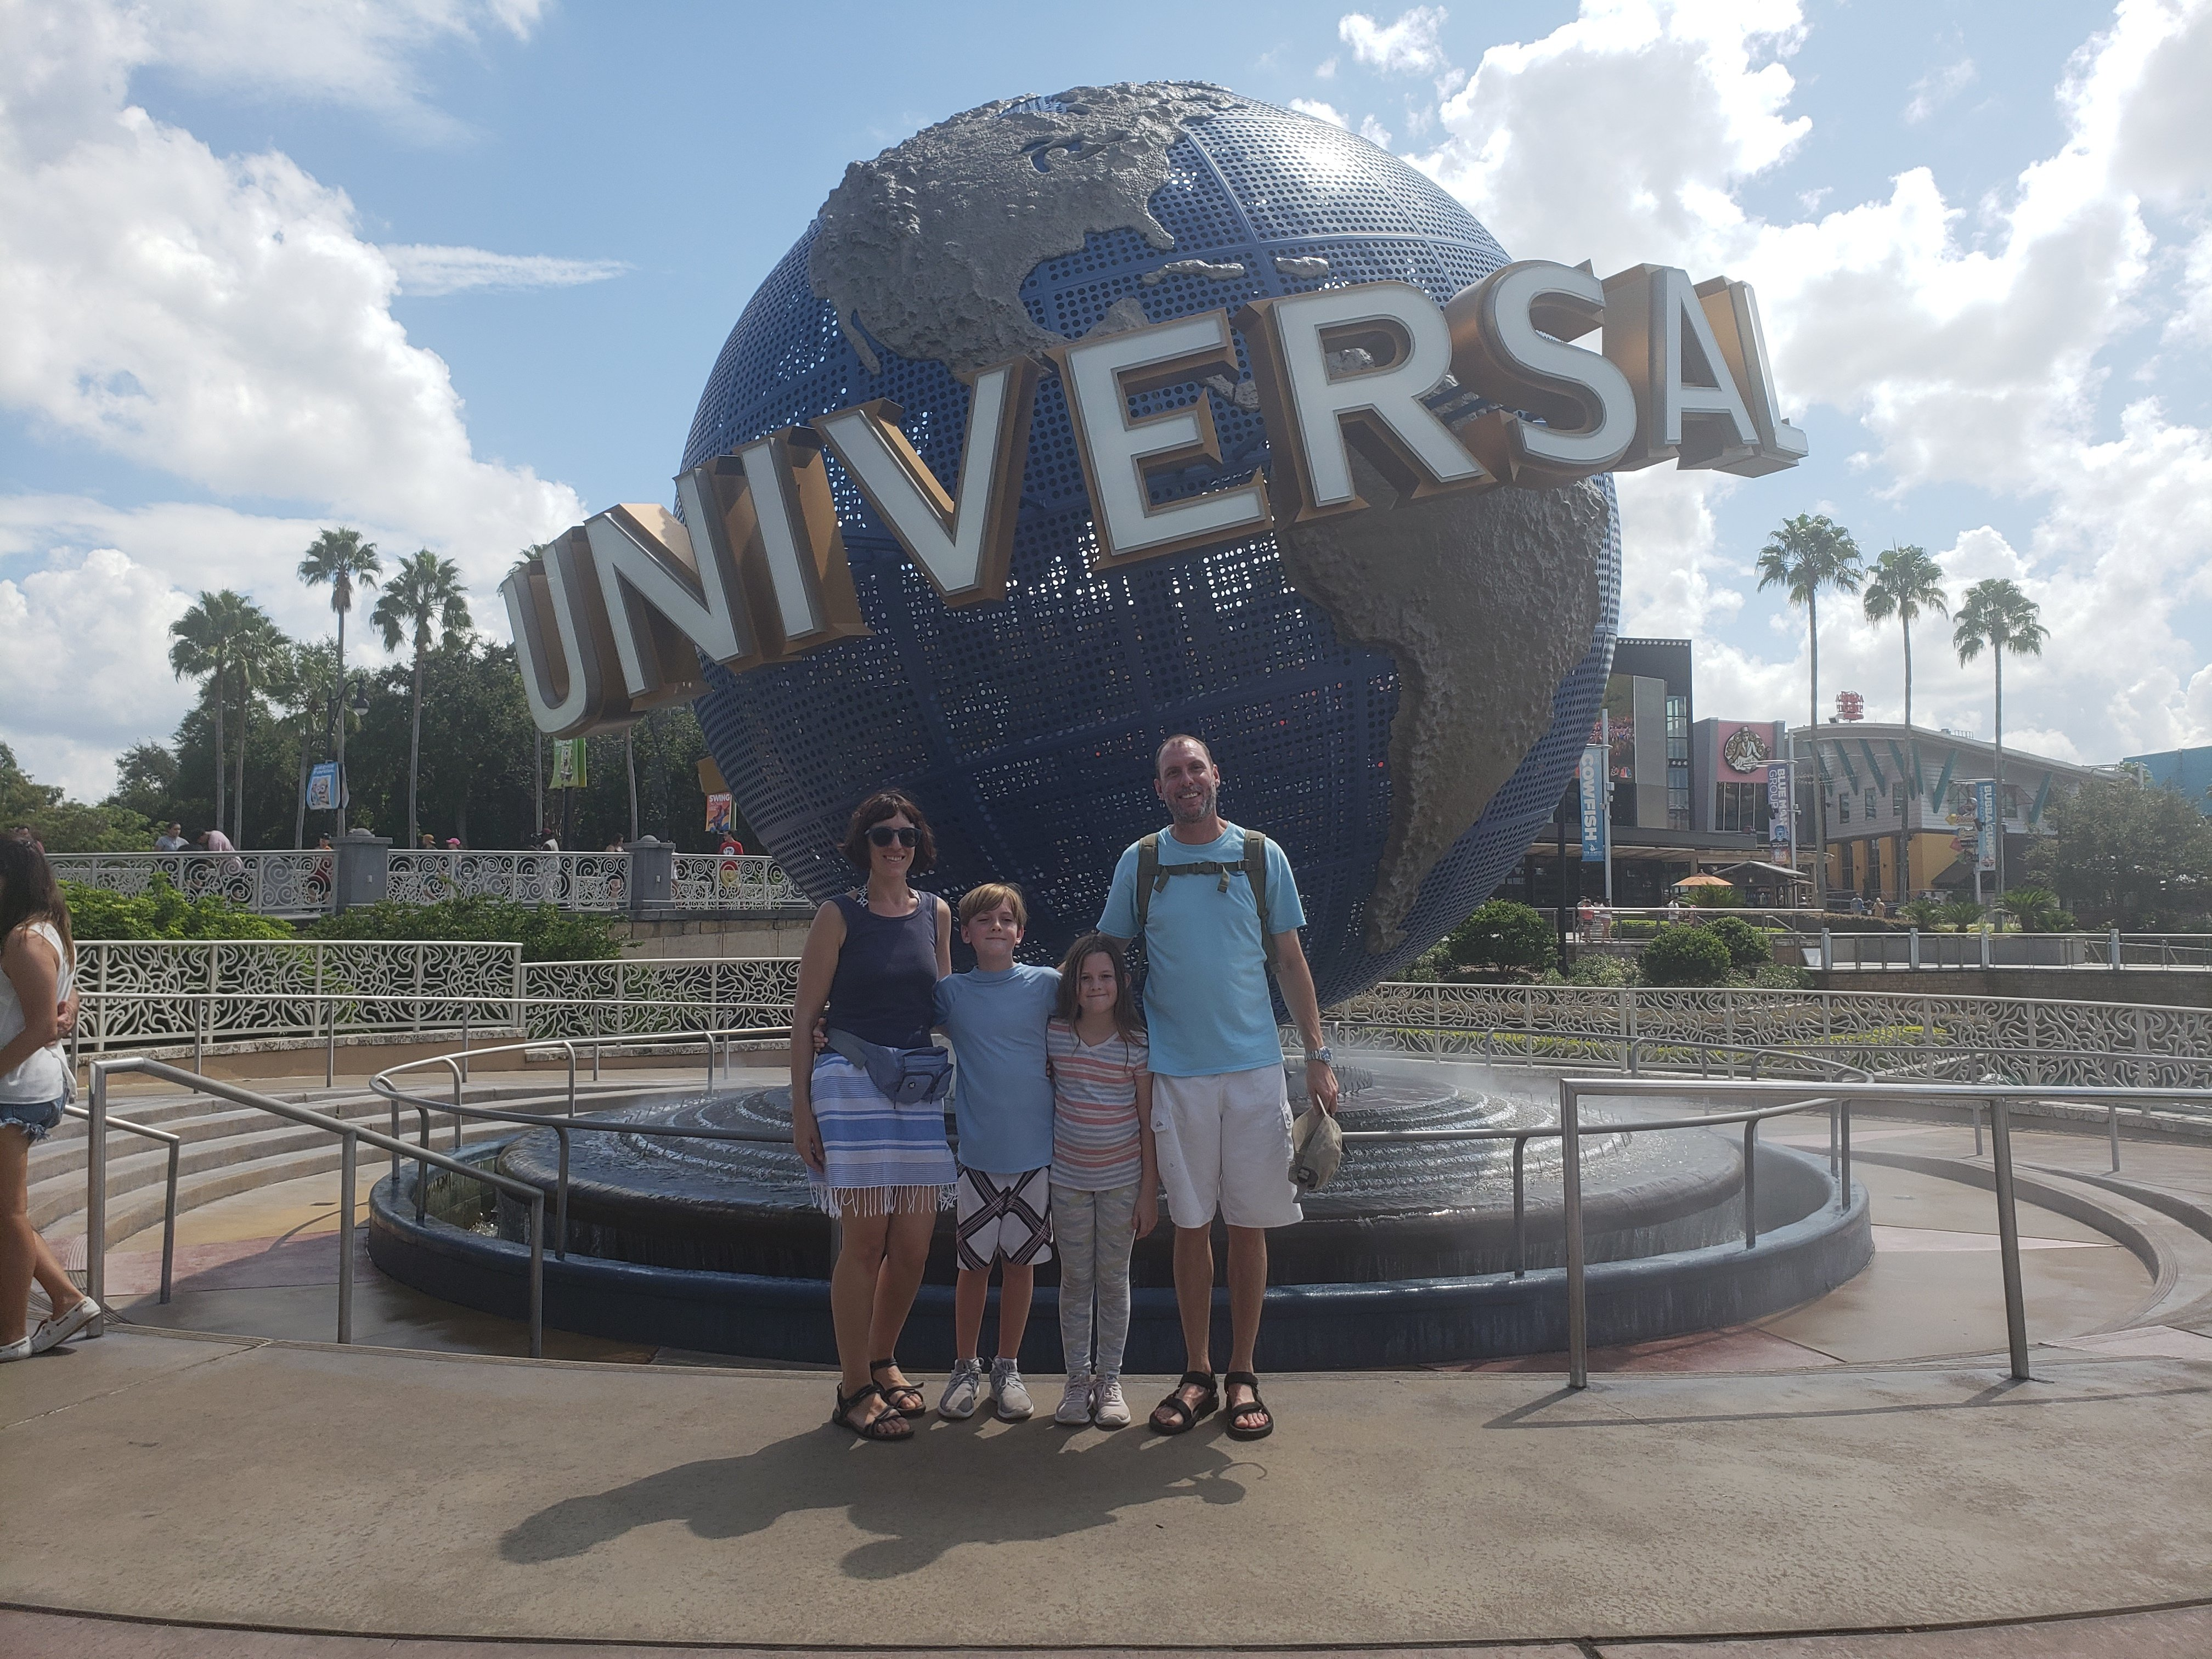 Were Just Back From A Whirlwind Family Reunion Vacation At Universal Orlando Perfect Trip Plus Lots Of New Makes Off Season So Hardly Any Waiting